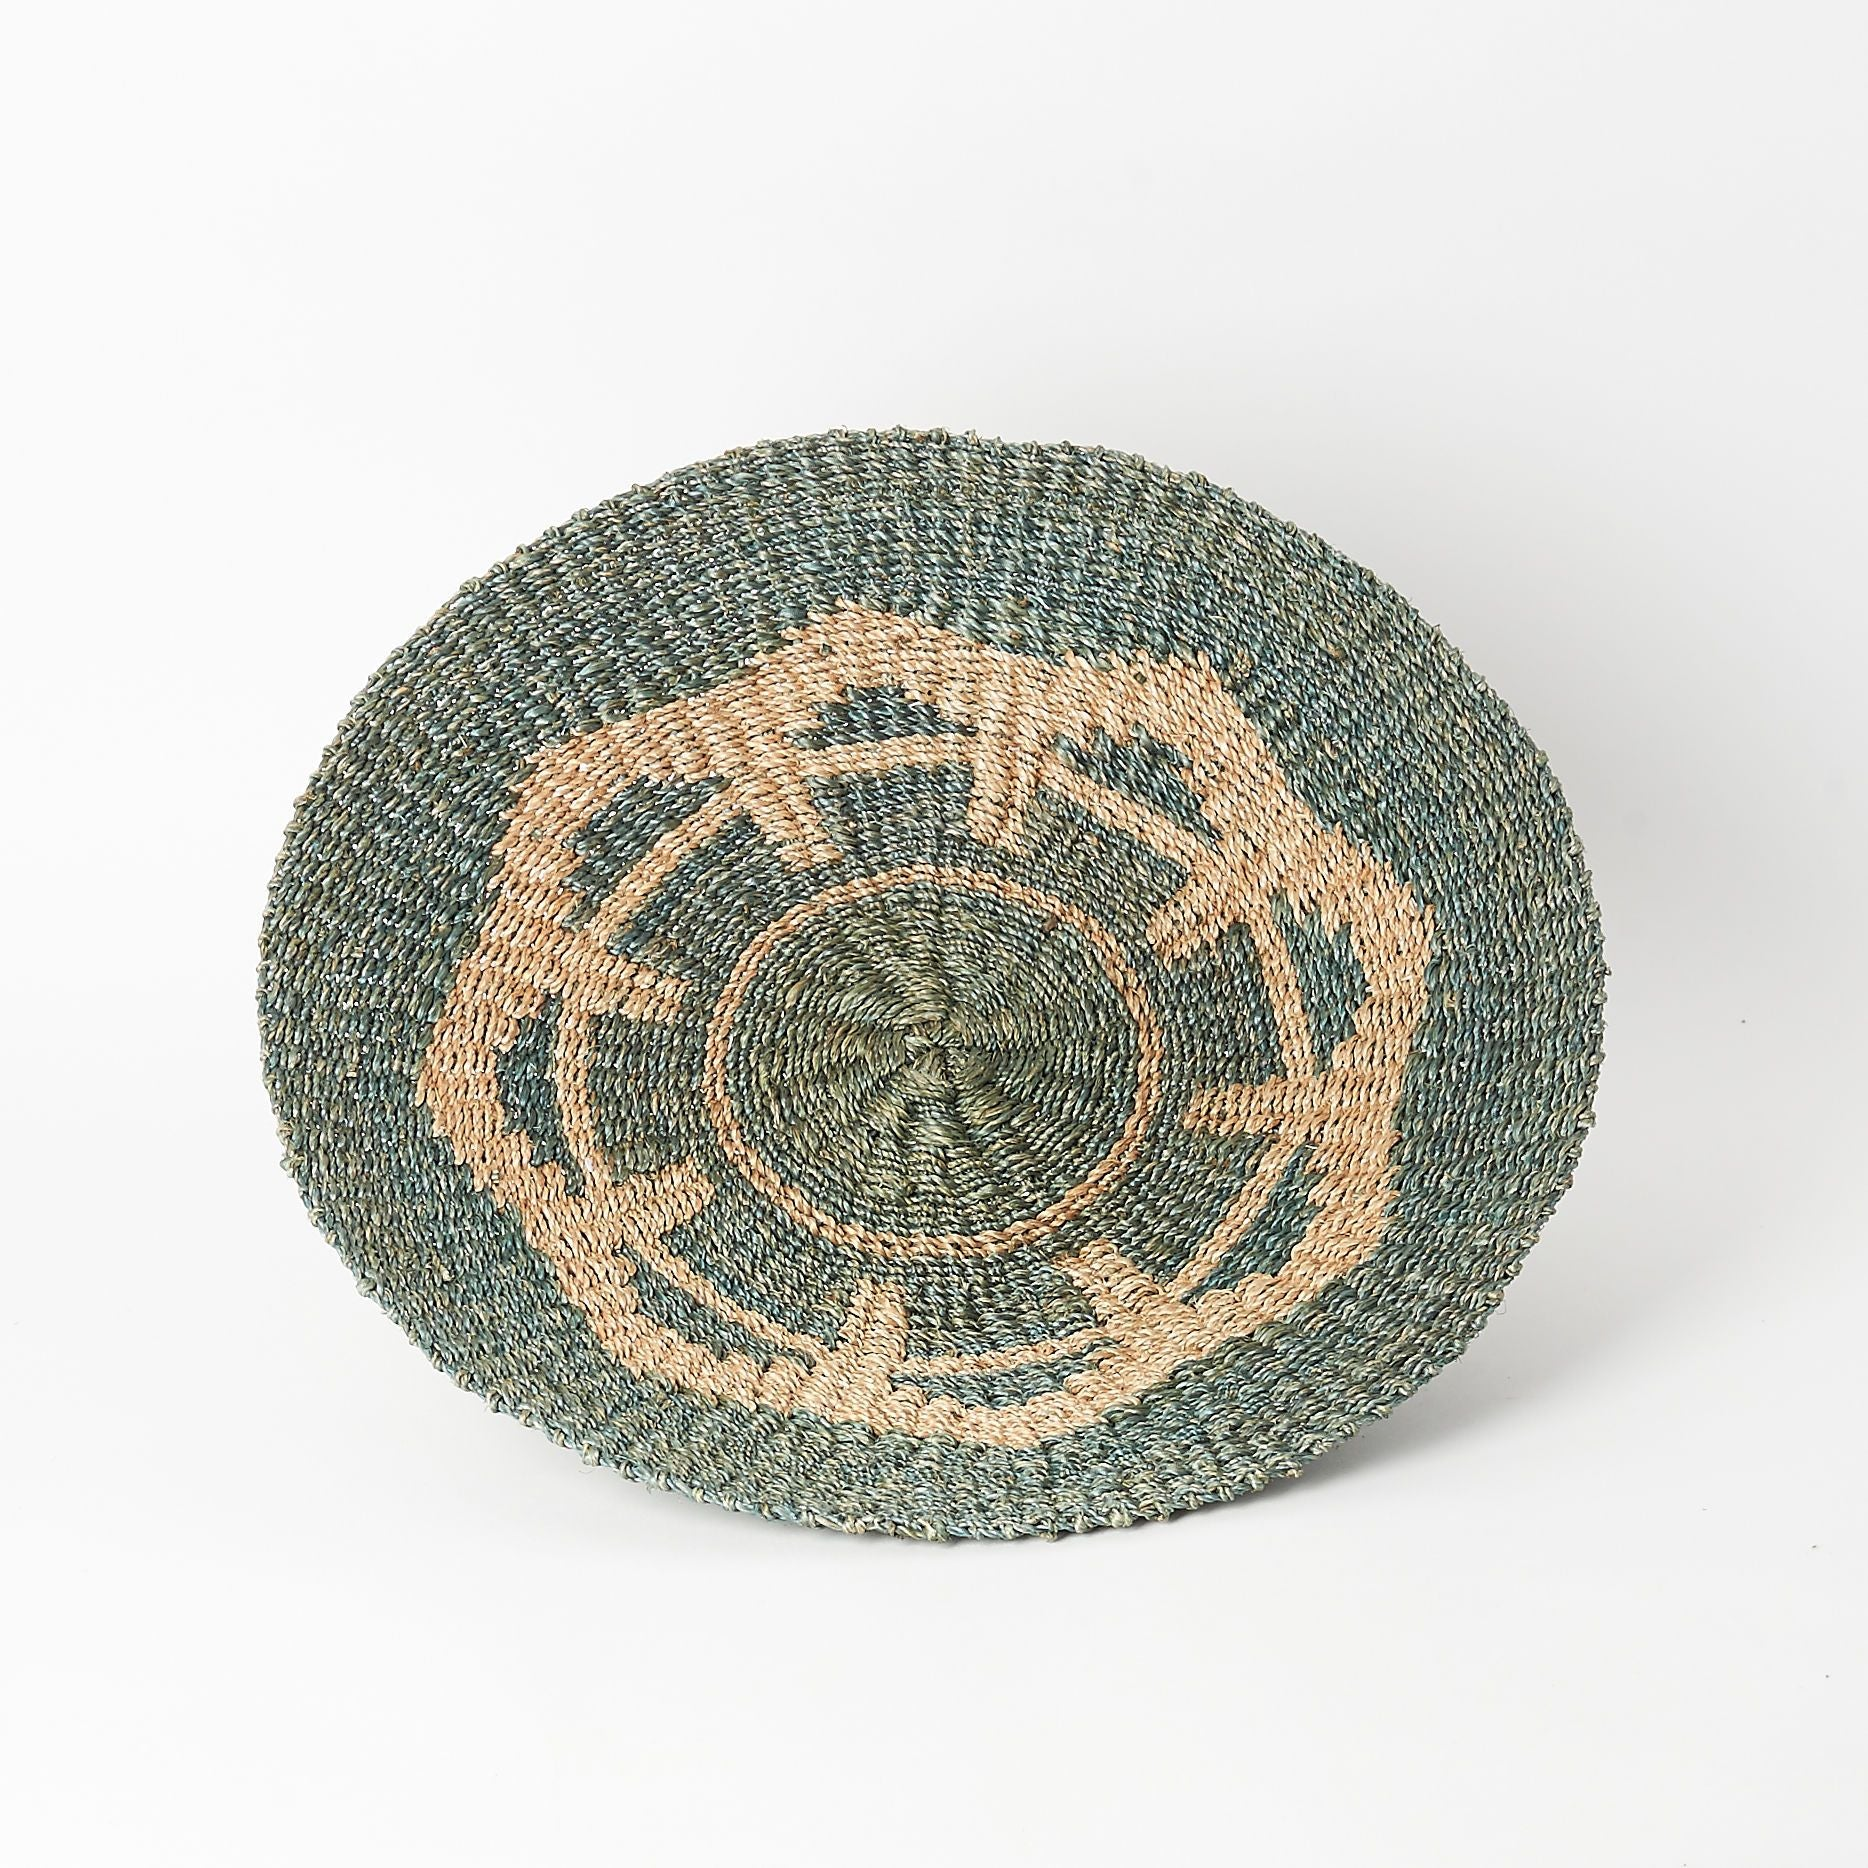 Hand-Woven Abaca Basket in Blue